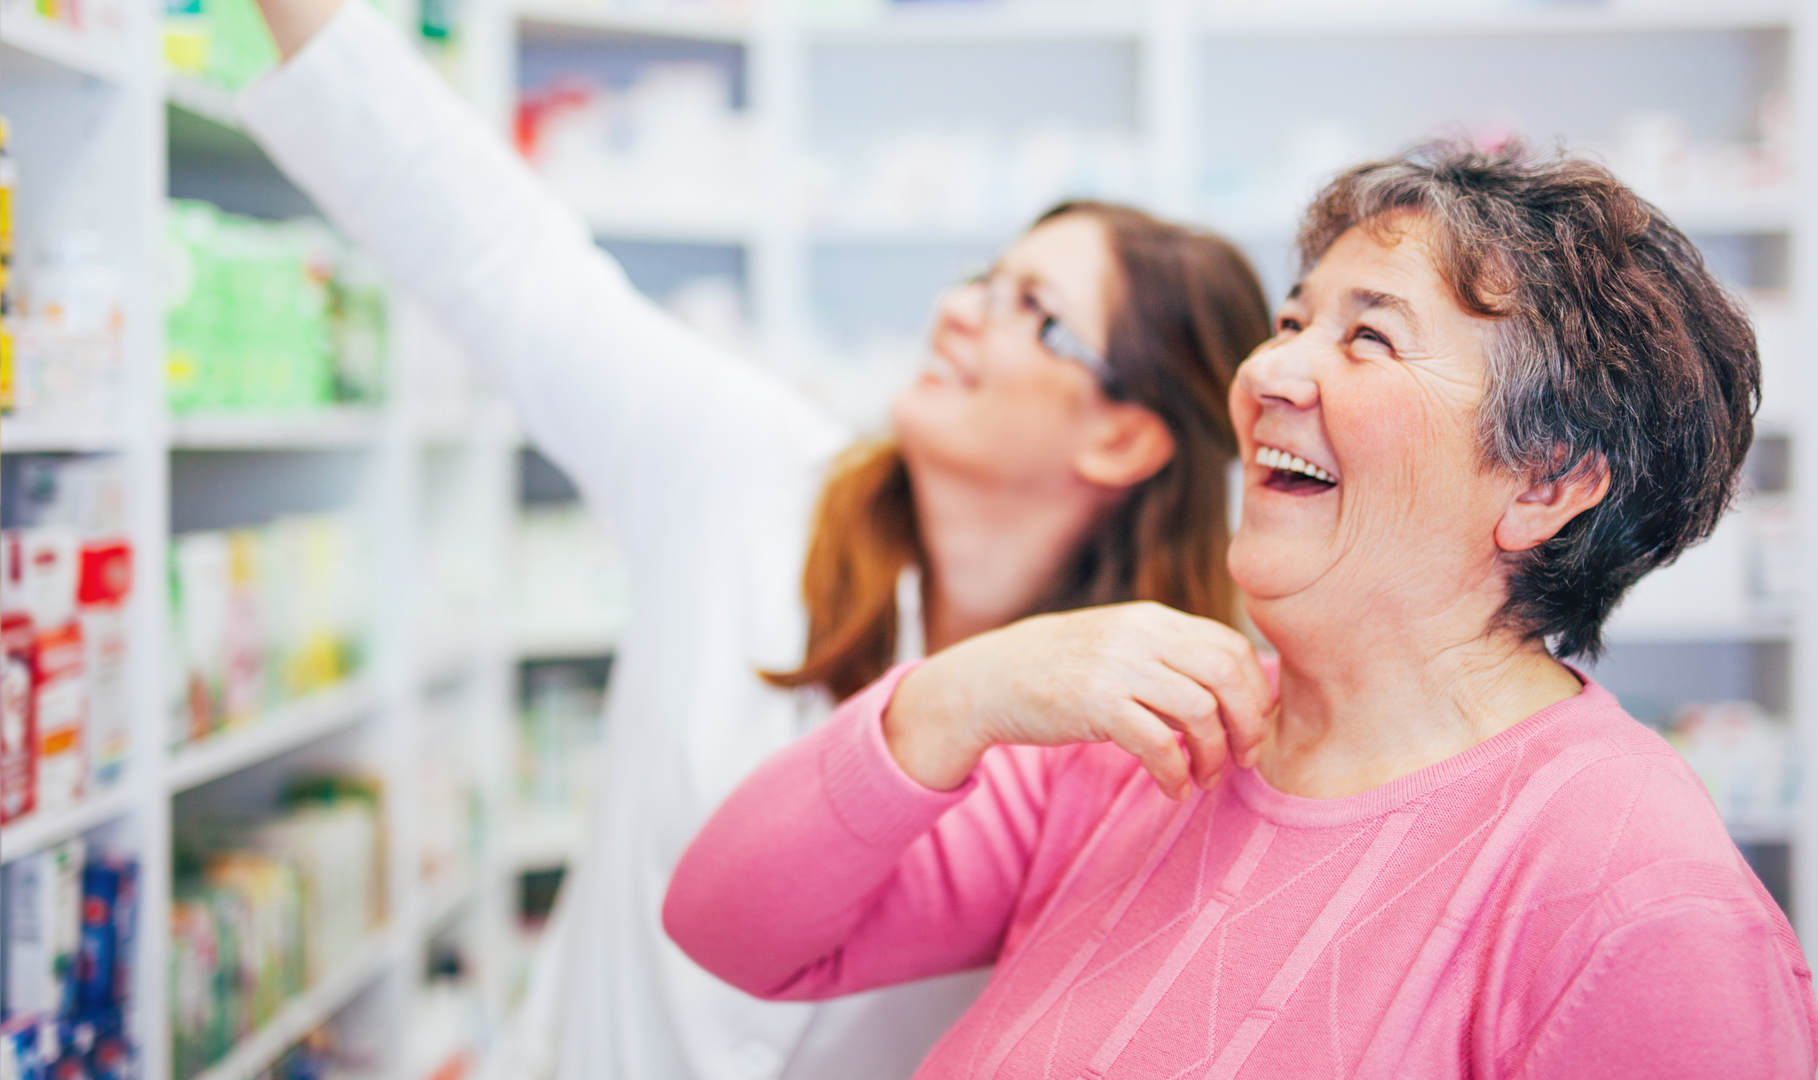 A customer laughing joyfully as a pharmacist helps her find the medication she needs